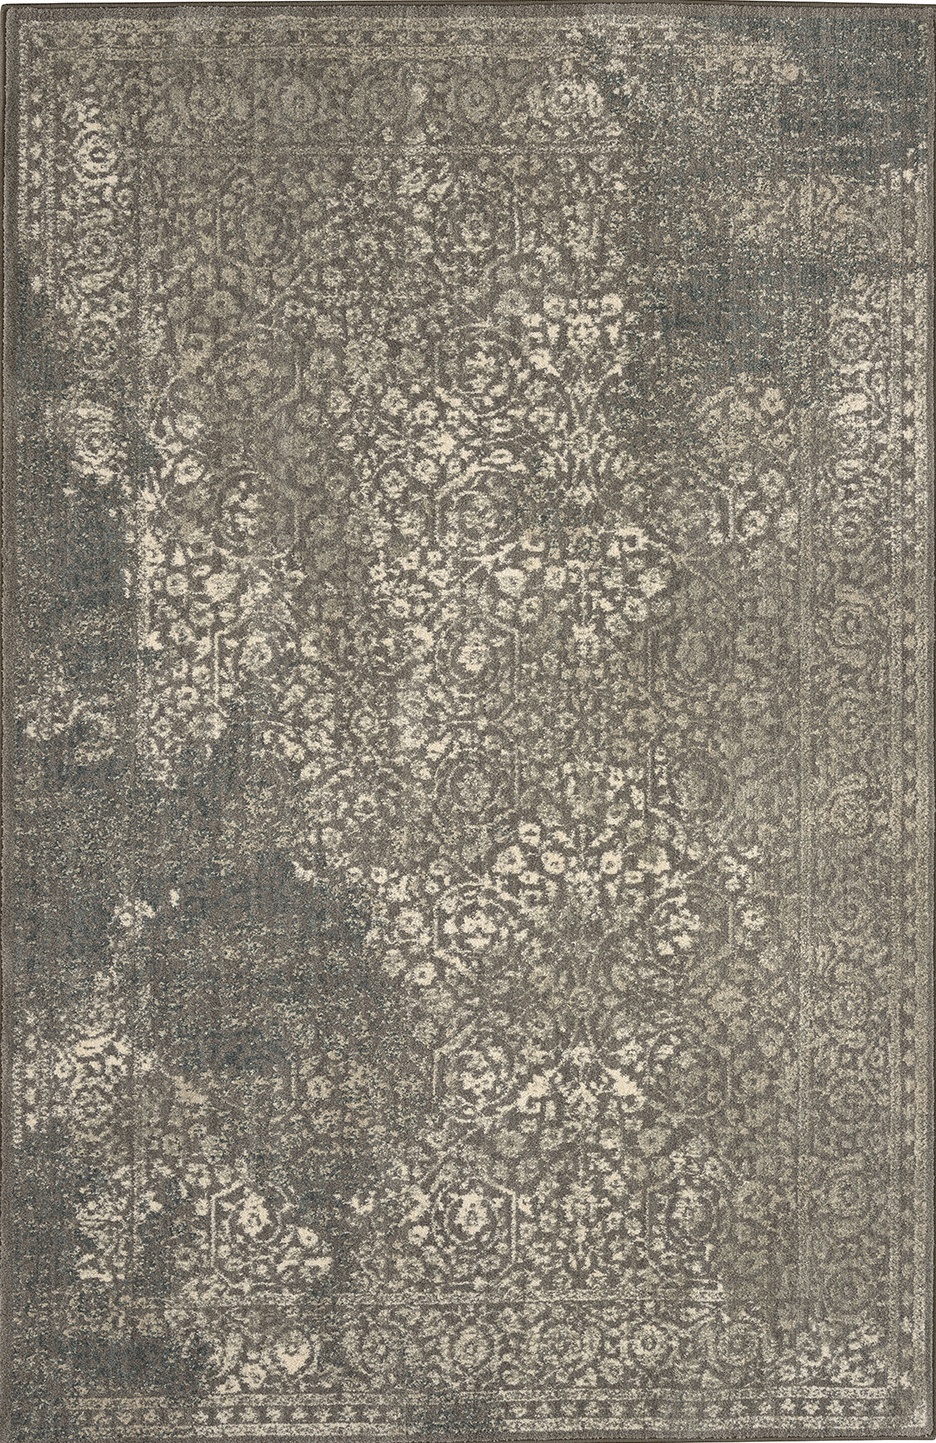 Karastan Euphoria Ayr Willow Grey 90643 90075 Area Rug